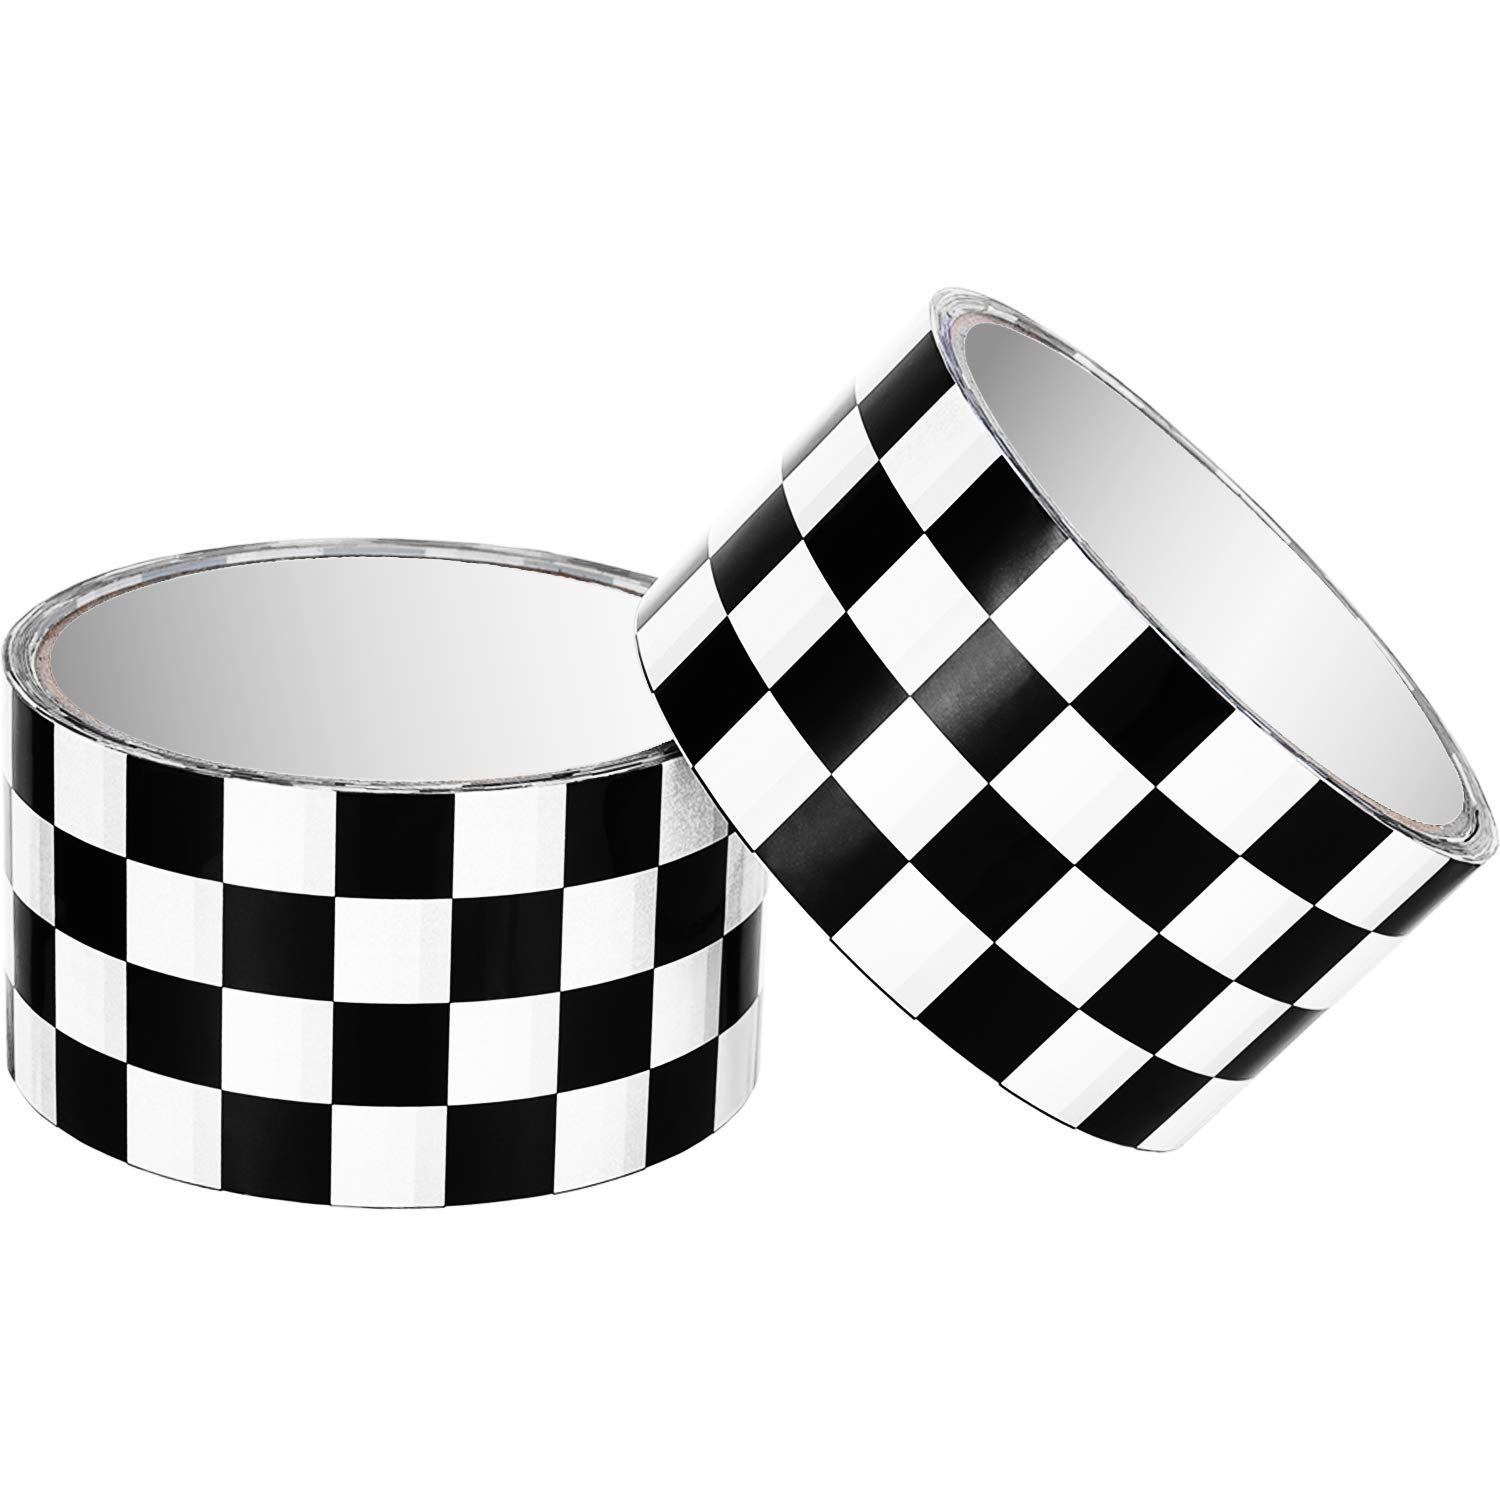 Buy Tecunite 2 Pieces Checkered Tape Black And White Checkered Flag